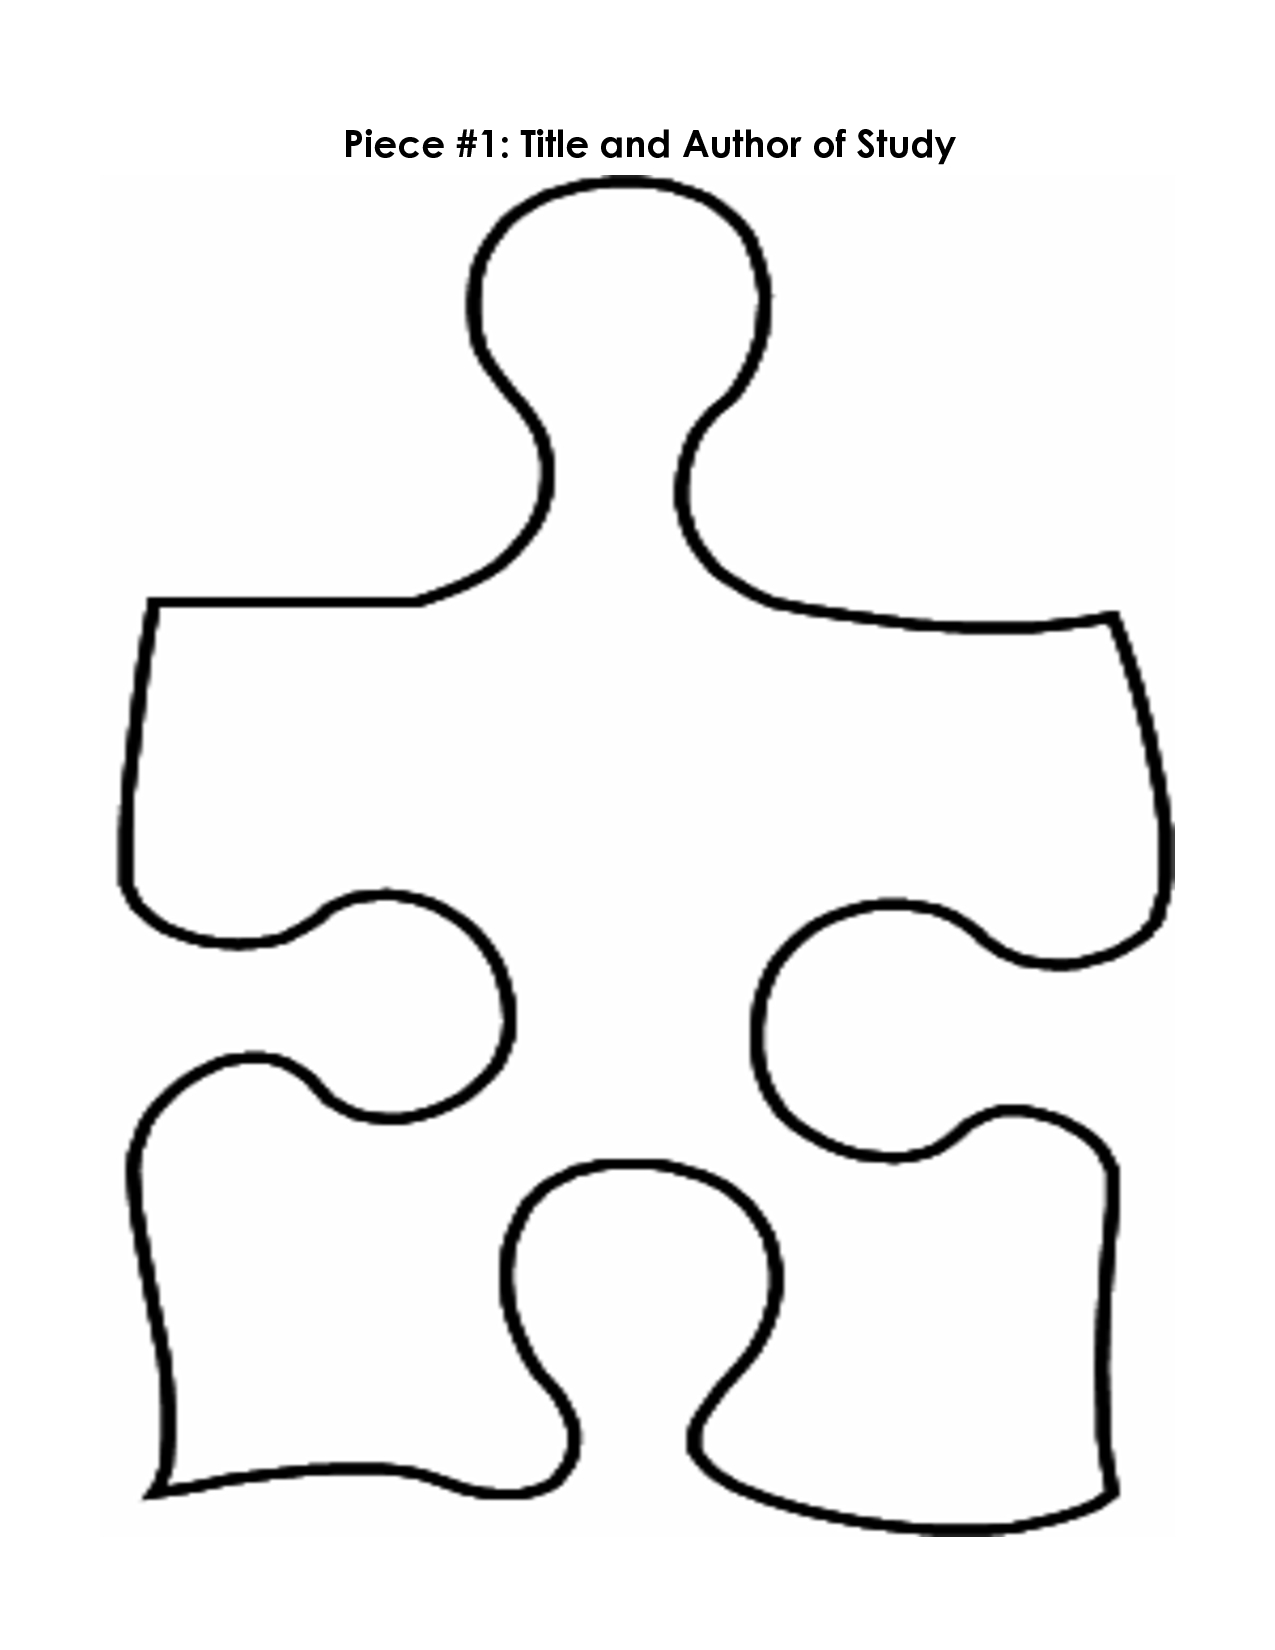 Puzzle Piece Mystery Book Template Pp | Printables | Pinterest - Free Blank Printable Puzzle Pieces